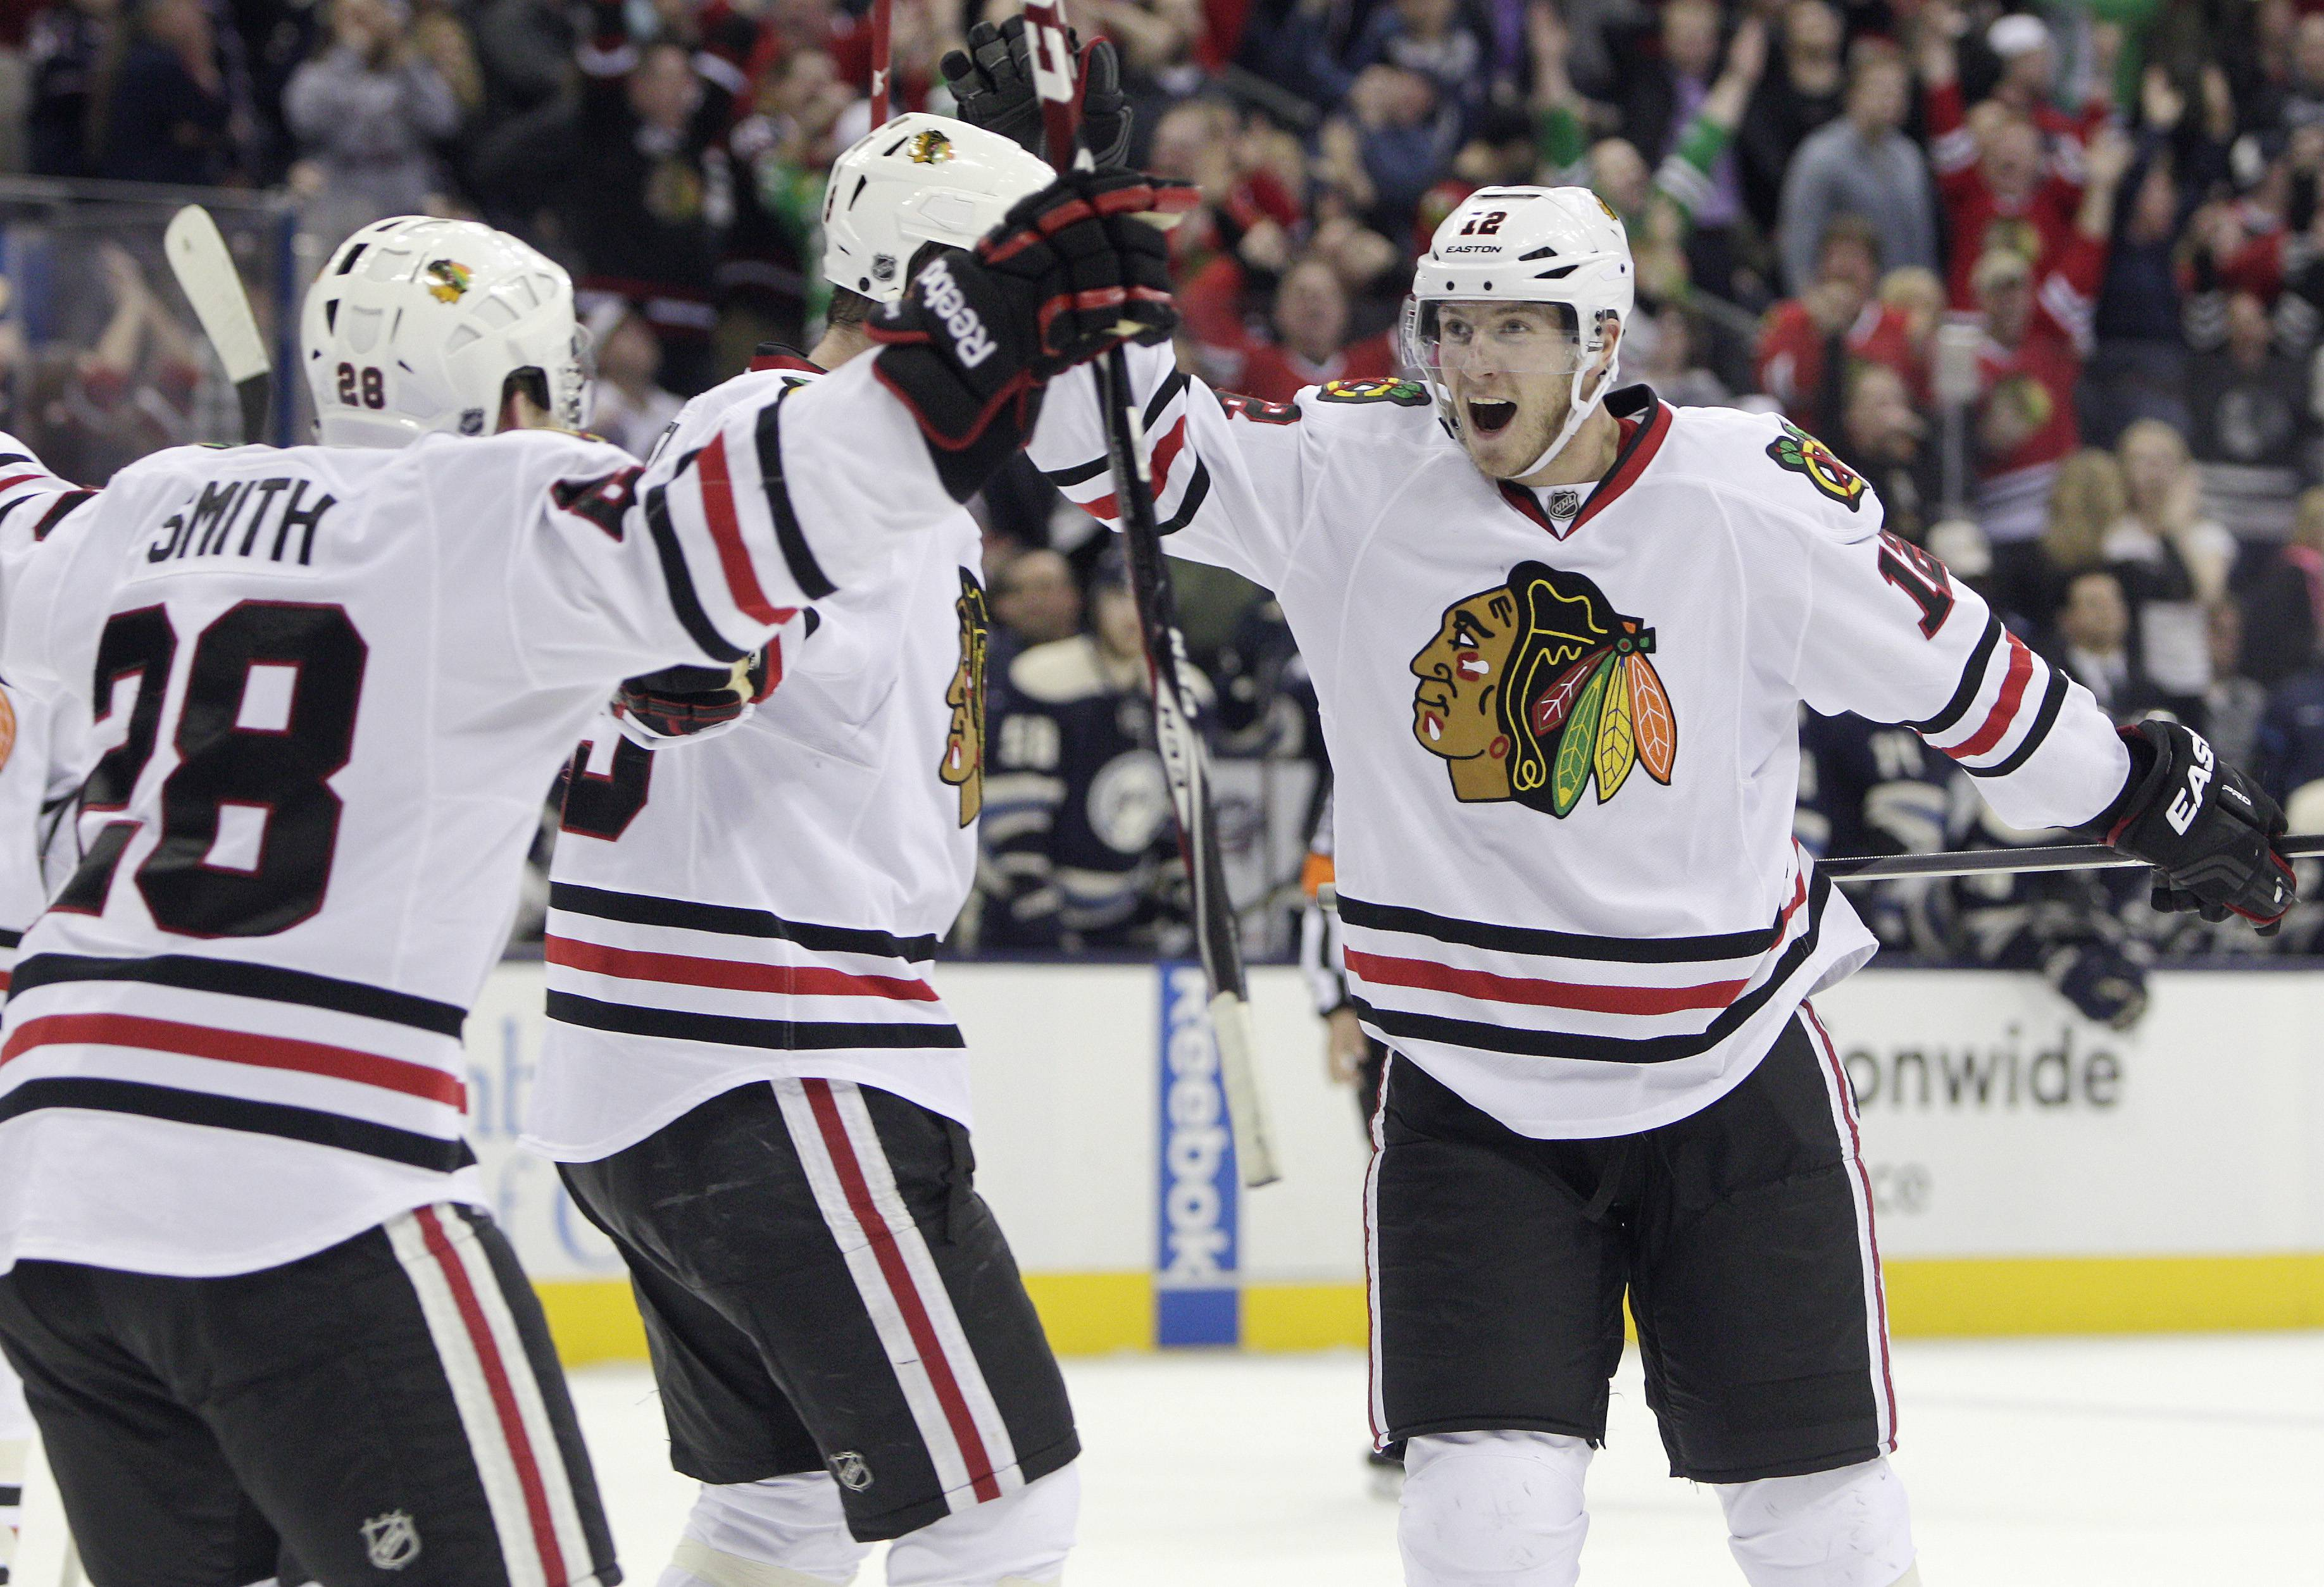 Chicago Blackhawks' Peter Regin, right, of Denmark, celebrates their goal against the Columbus Blue Jackets with teammates Ben Smith, left, and Bryan Bickell during the third period of an NHL hockey game on Friday, April 4, 2014, in Columbus, Ohio. The Blackhawks defeated the Blue Jackets 4-3.